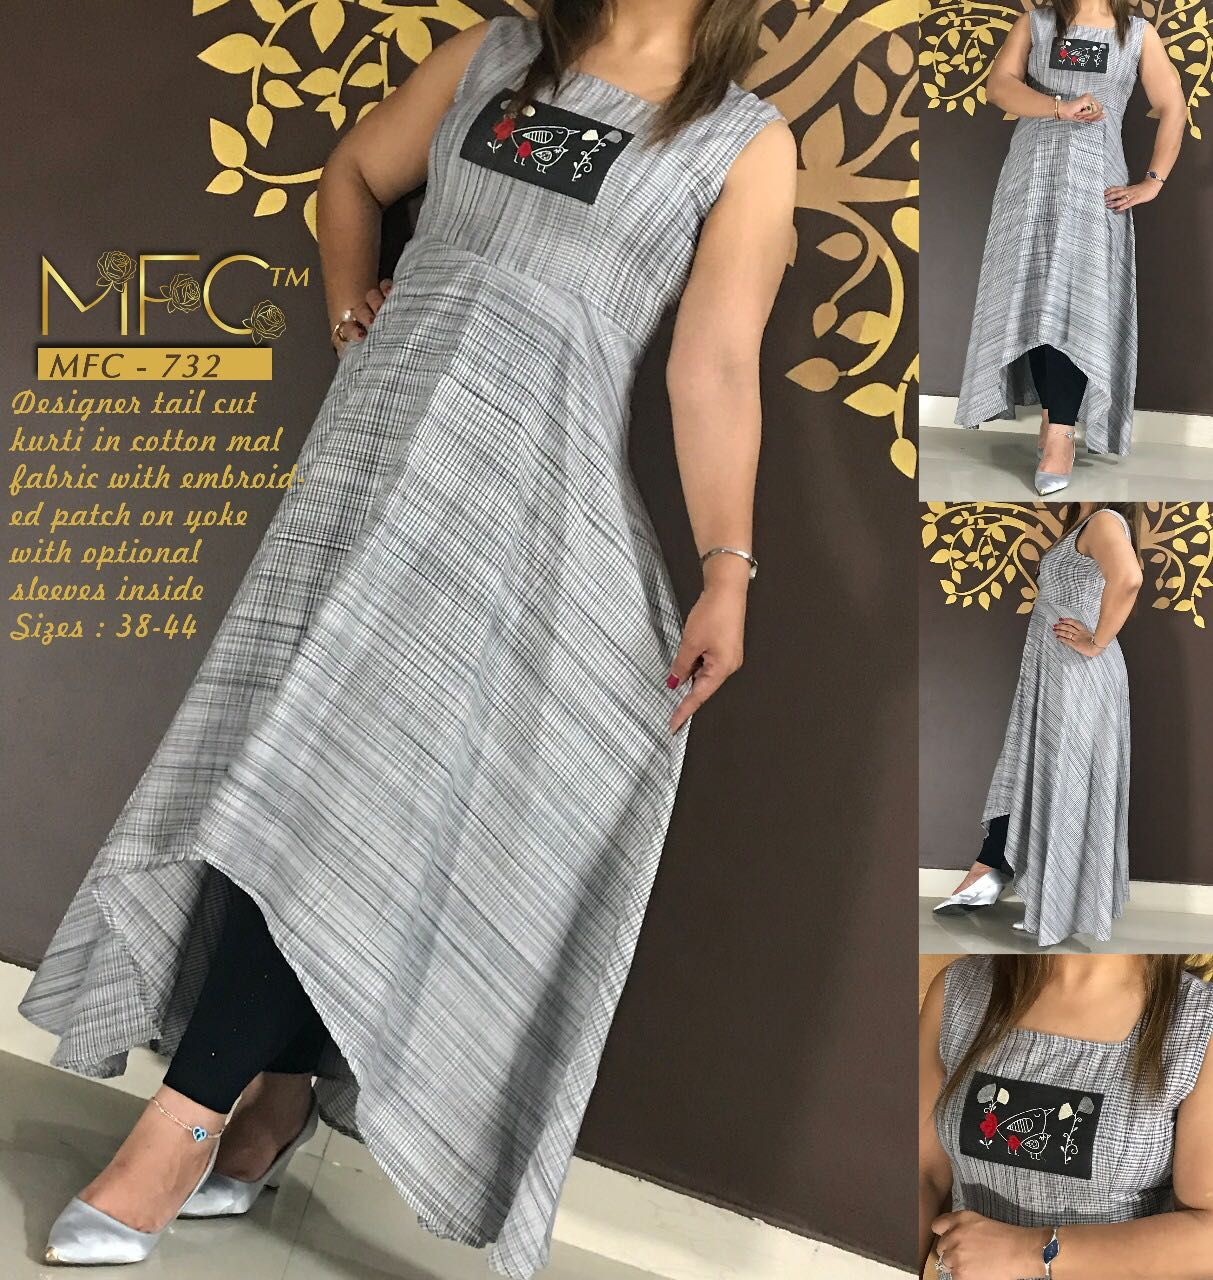 5084efa73d1 Shop MFC Kurtis Online with the best price. Flaunt latest styled cuts and  look with these Indian Dresses